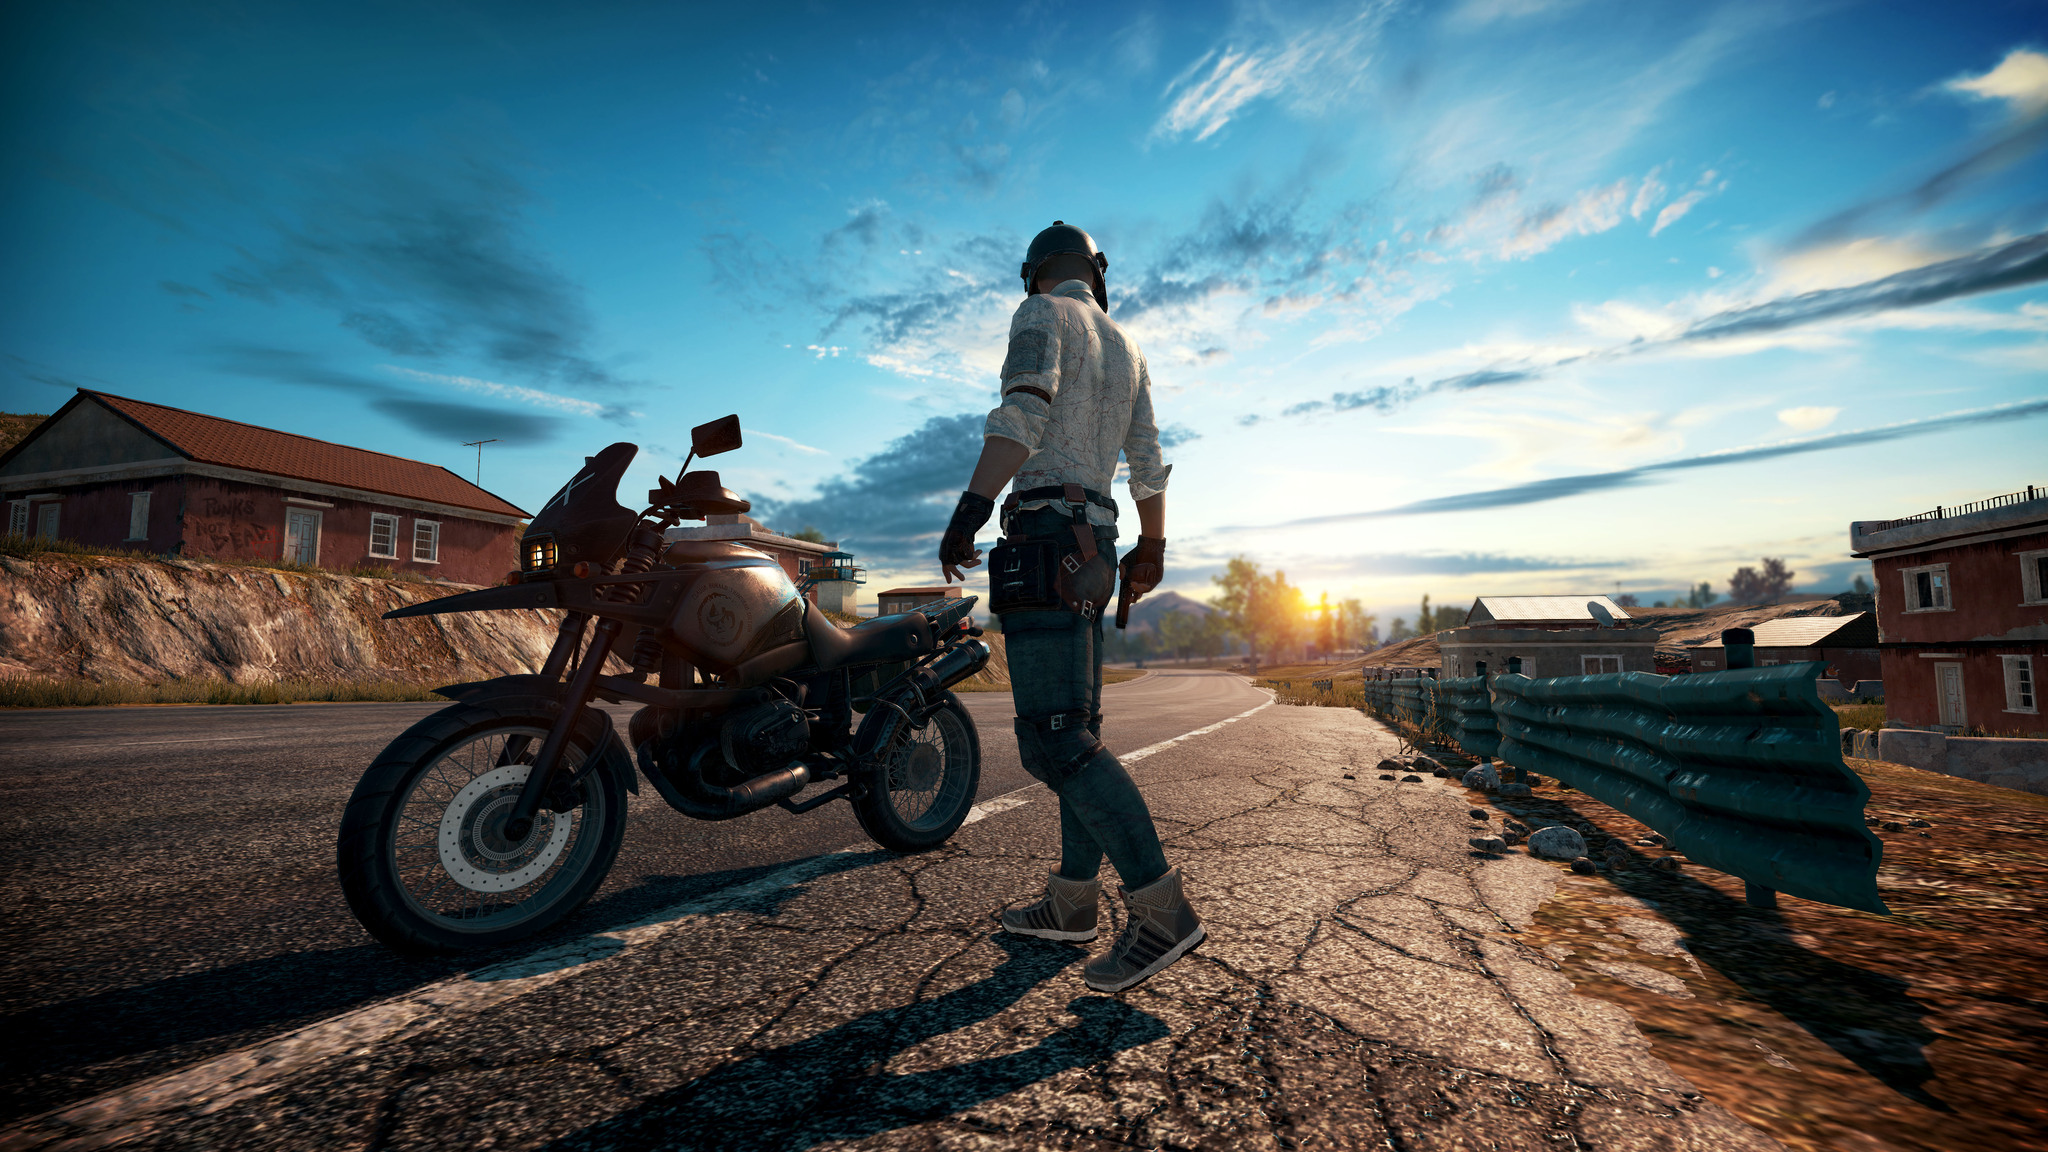 Pubg Game 4k Wallpaper Download: 2048x1152 PlayerUnknowns Battlegrounds 5k Screenshot